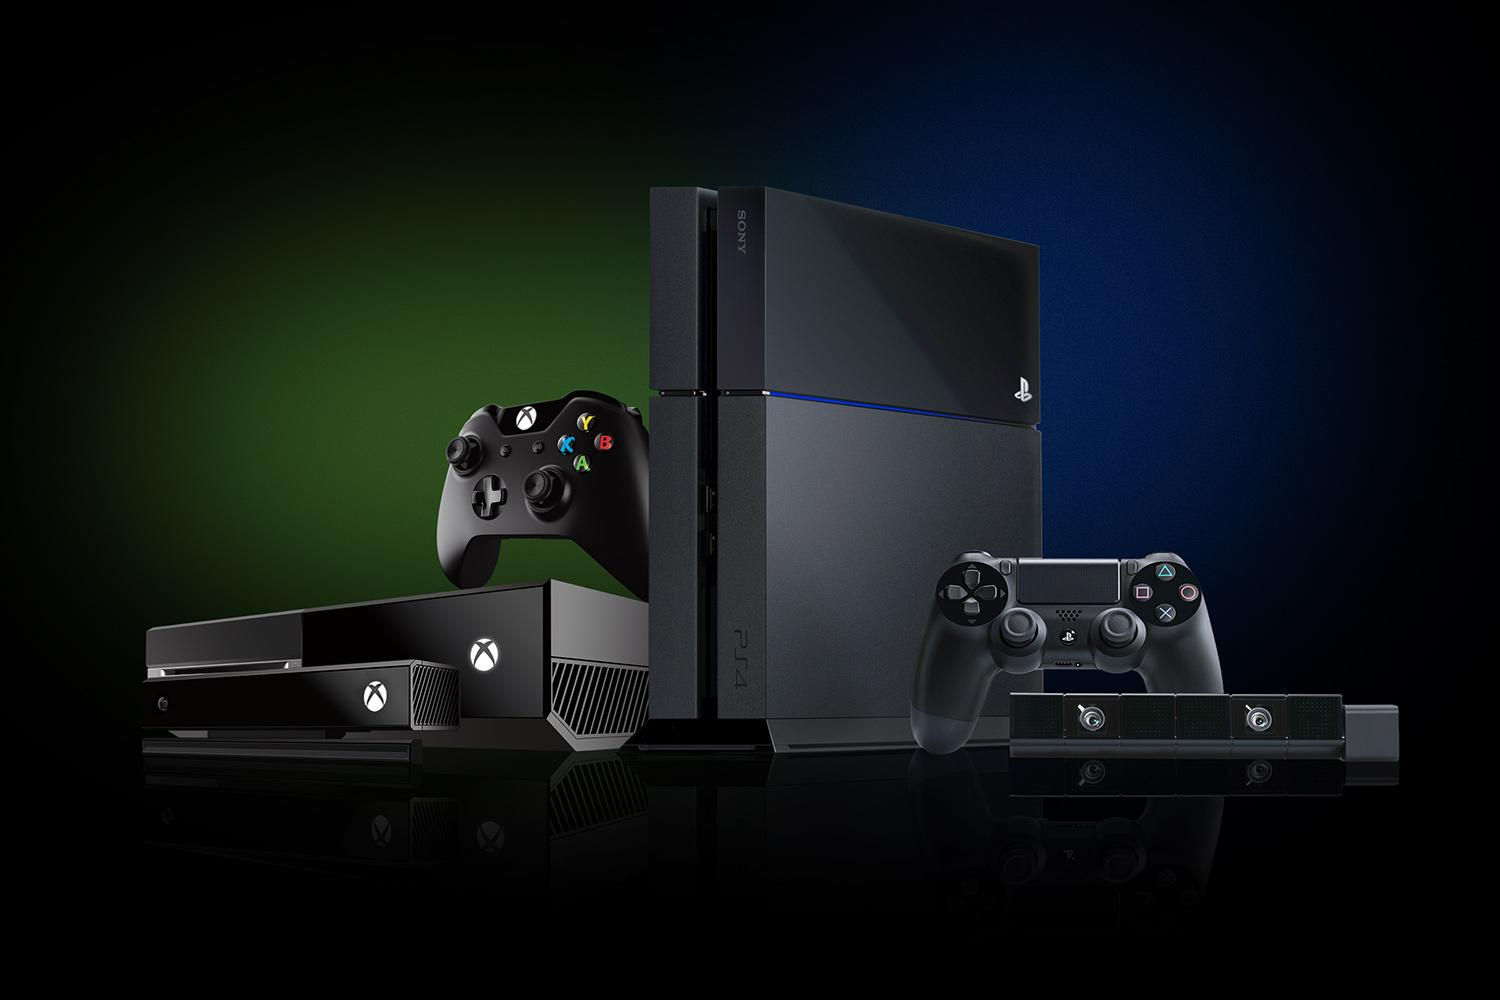 Xbox One Vs Playstation 4 : Playstation vs xbox one the first year kumazoku